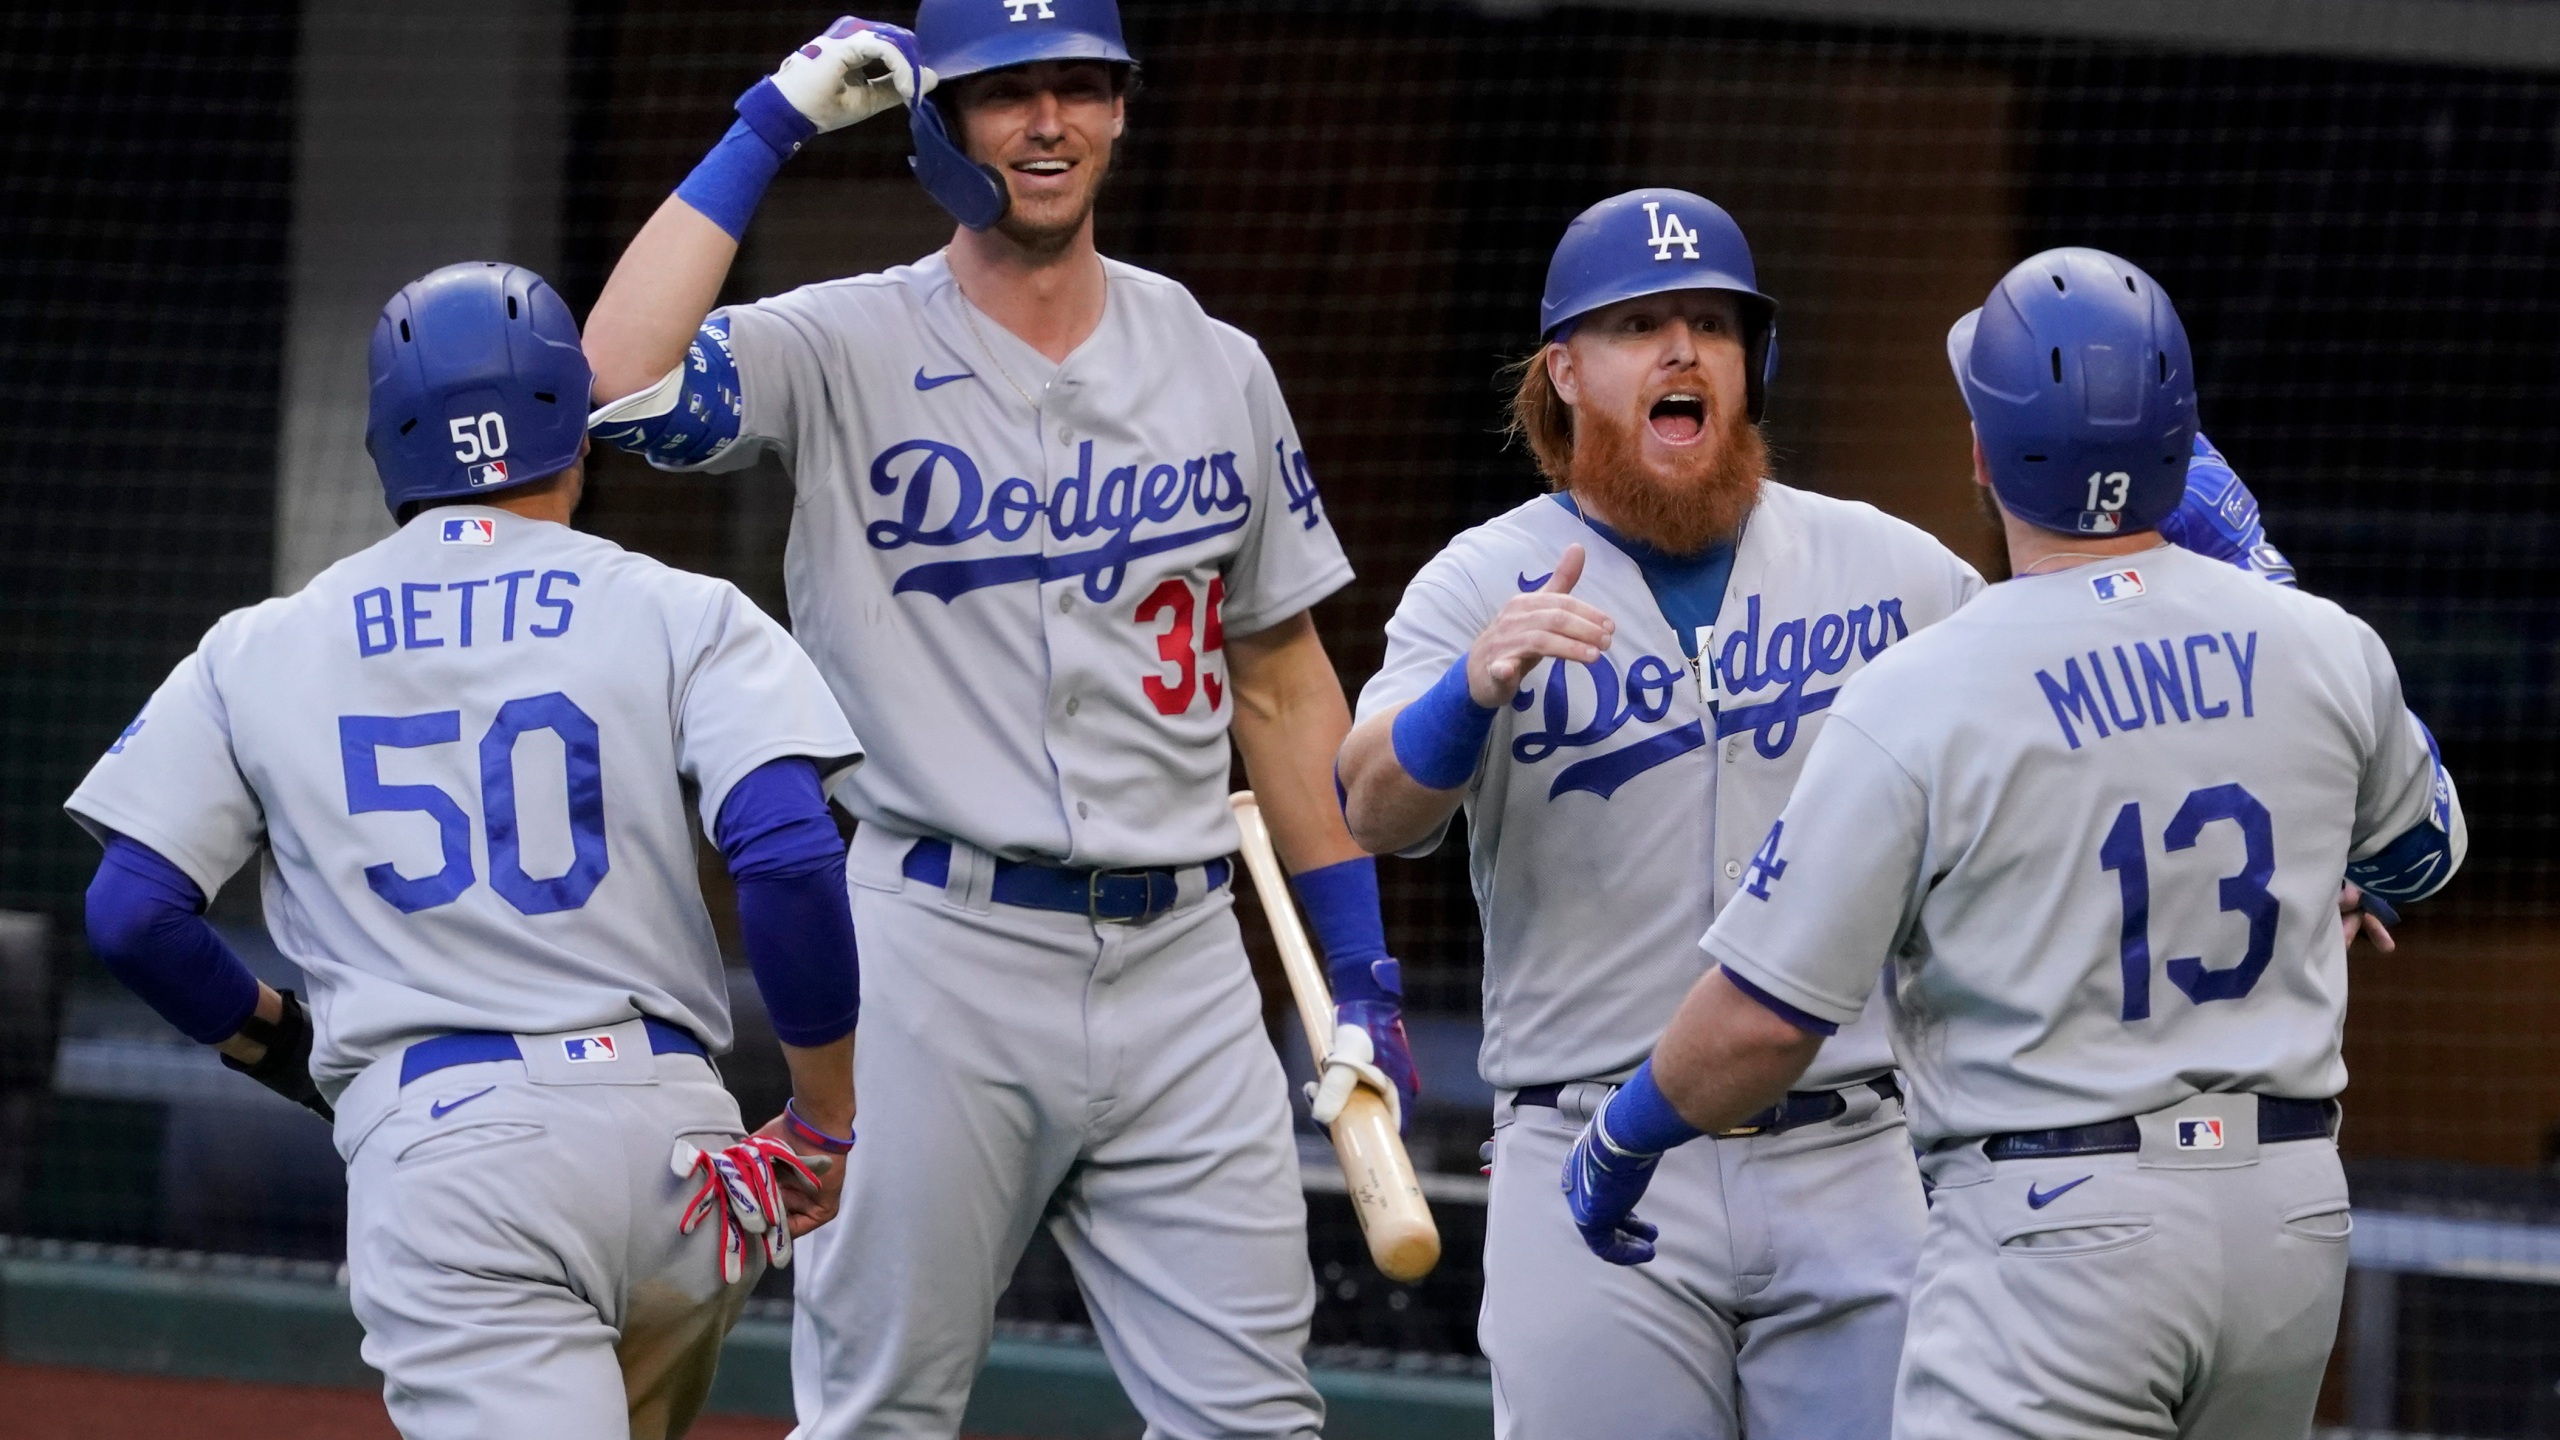 Los Angeles Dodgers' Max Muncy (13) celebrates his grand slam home run during the first inning in Game 3 of a baseball National League Championship Series against the Atlanta Braves on Oct. 14, 2020, in Arlington, Texas. (AP Photo/Tony Gutierrez)